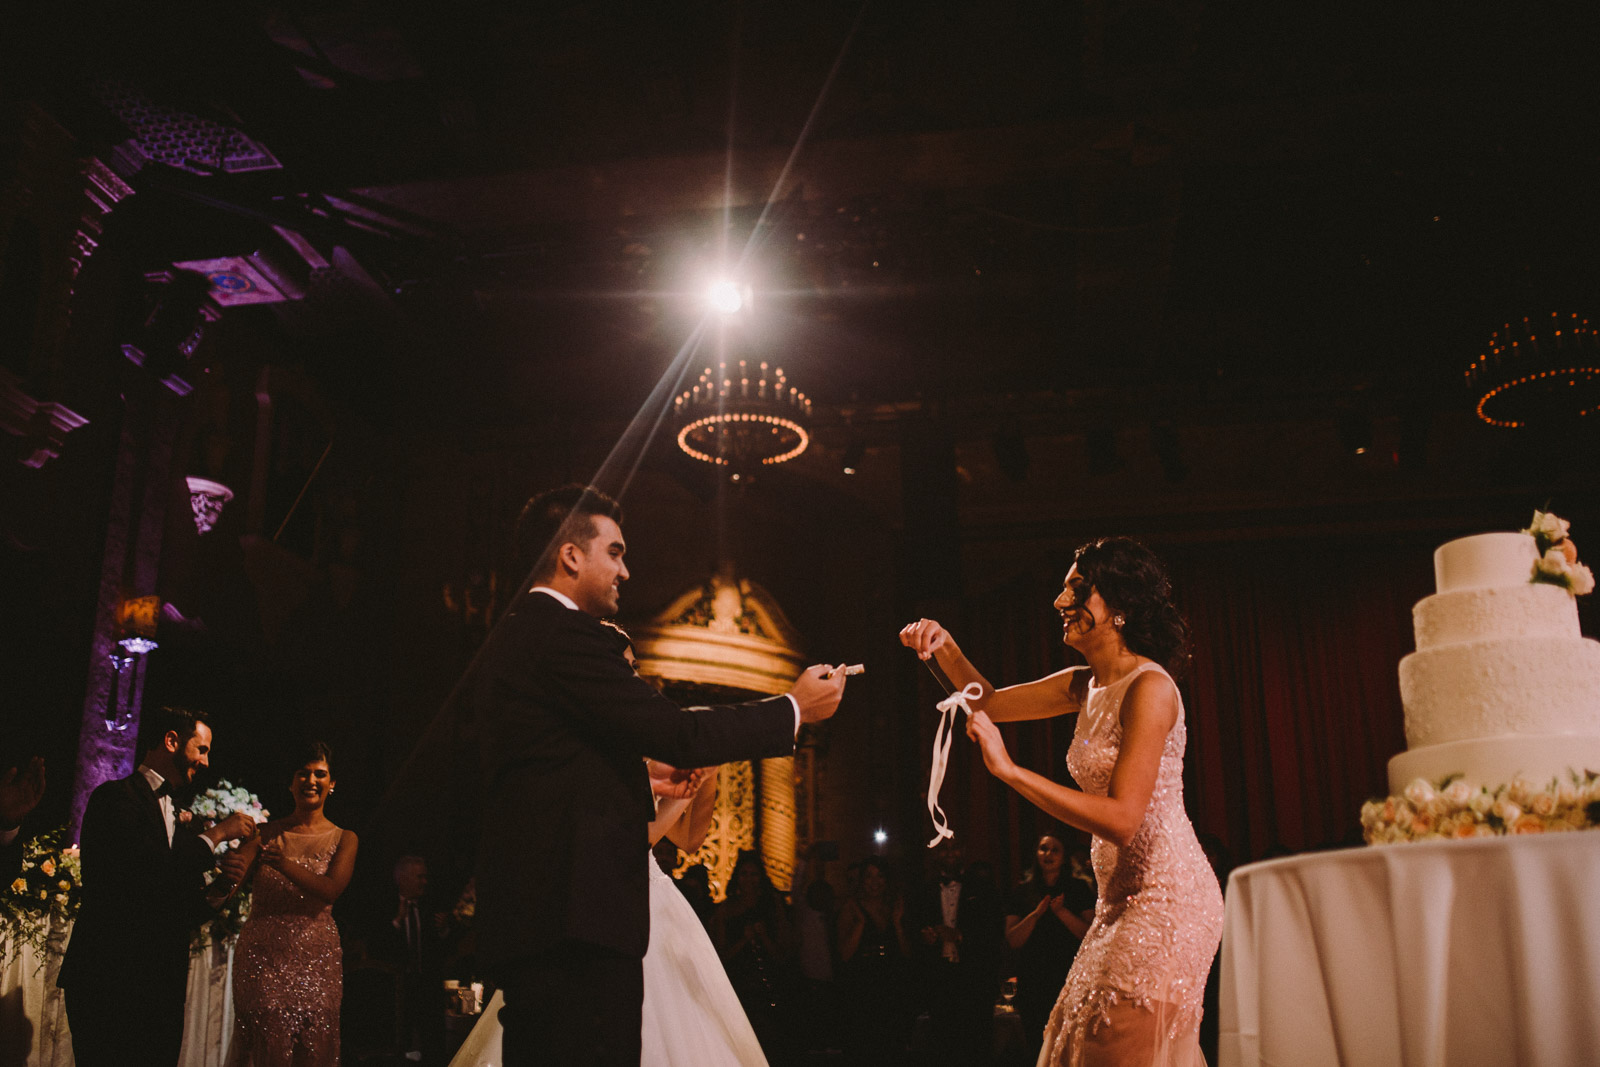 Melbourne Wedding PJ-Dean Raphael-159.jpg